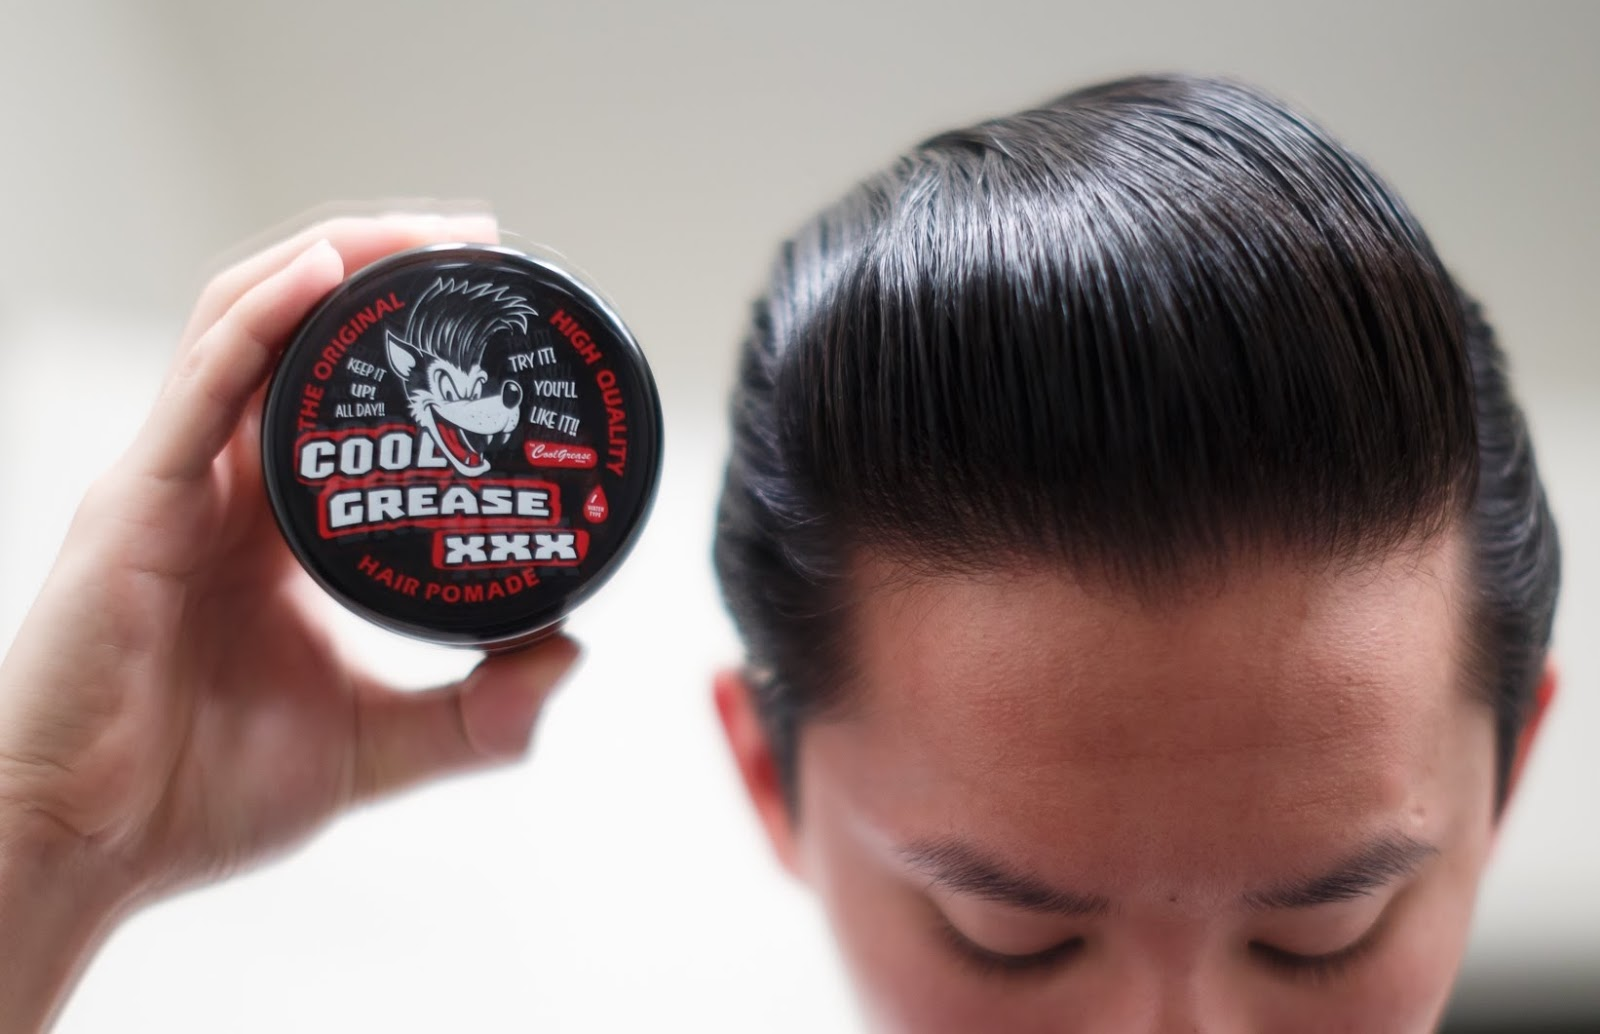 September 2015 Pomade Toar Ampamp Roby And Tnr Heavy Duty Free Sisir Original Cool Grease Xxx Review